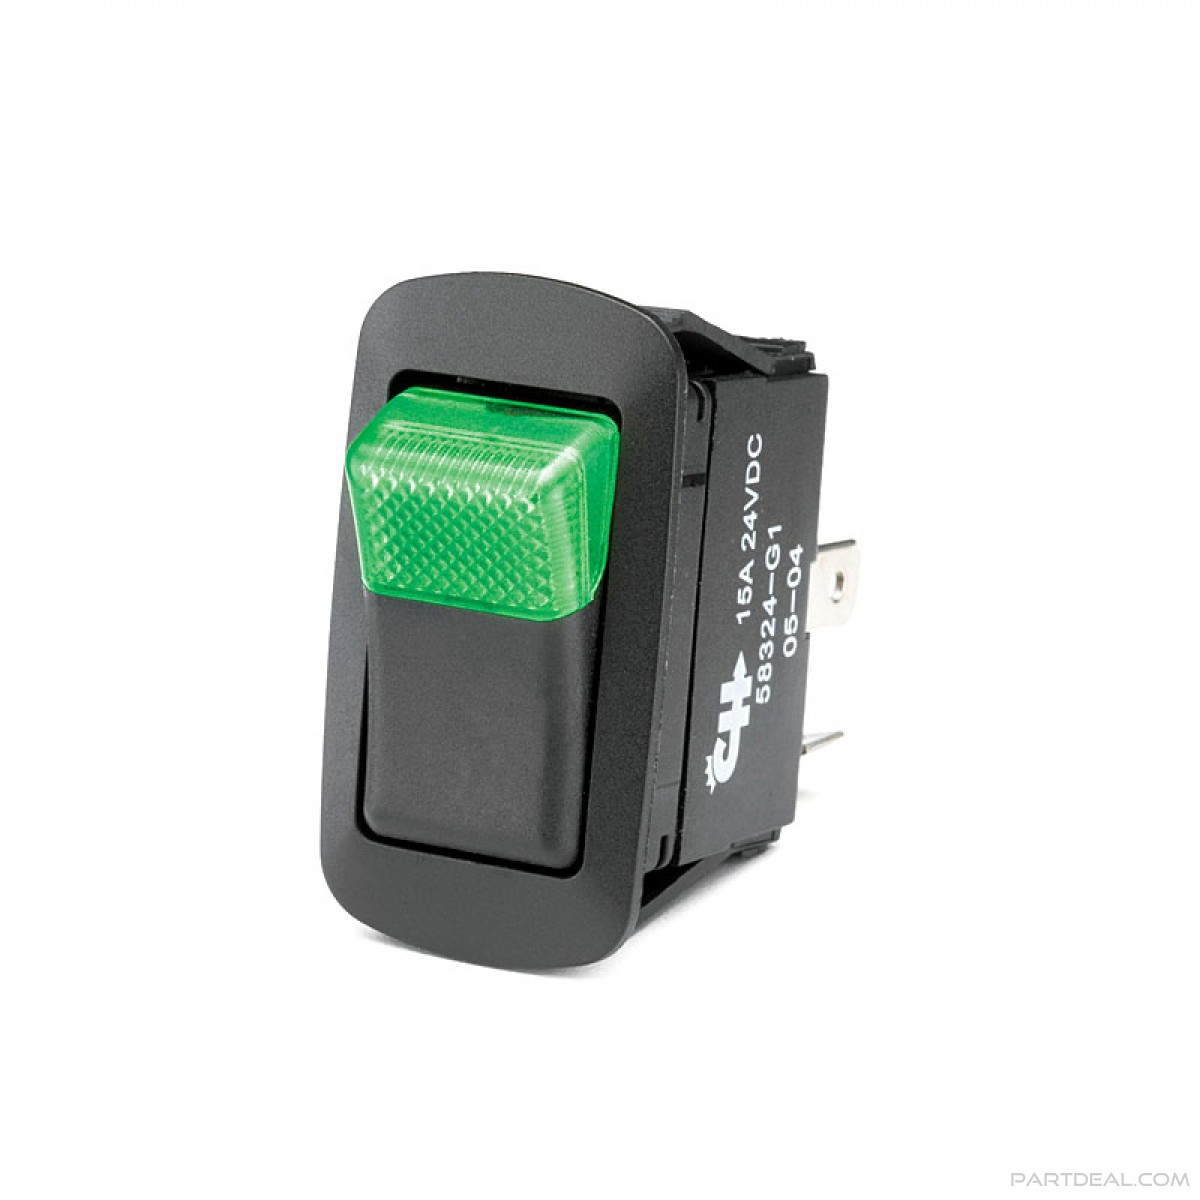 Marvelous Cole Hersee Cole Hersee Spst On Off Wide Lens Led Rocker Switch 25A Wiring Cloud Intelaidewilluminateatxorg